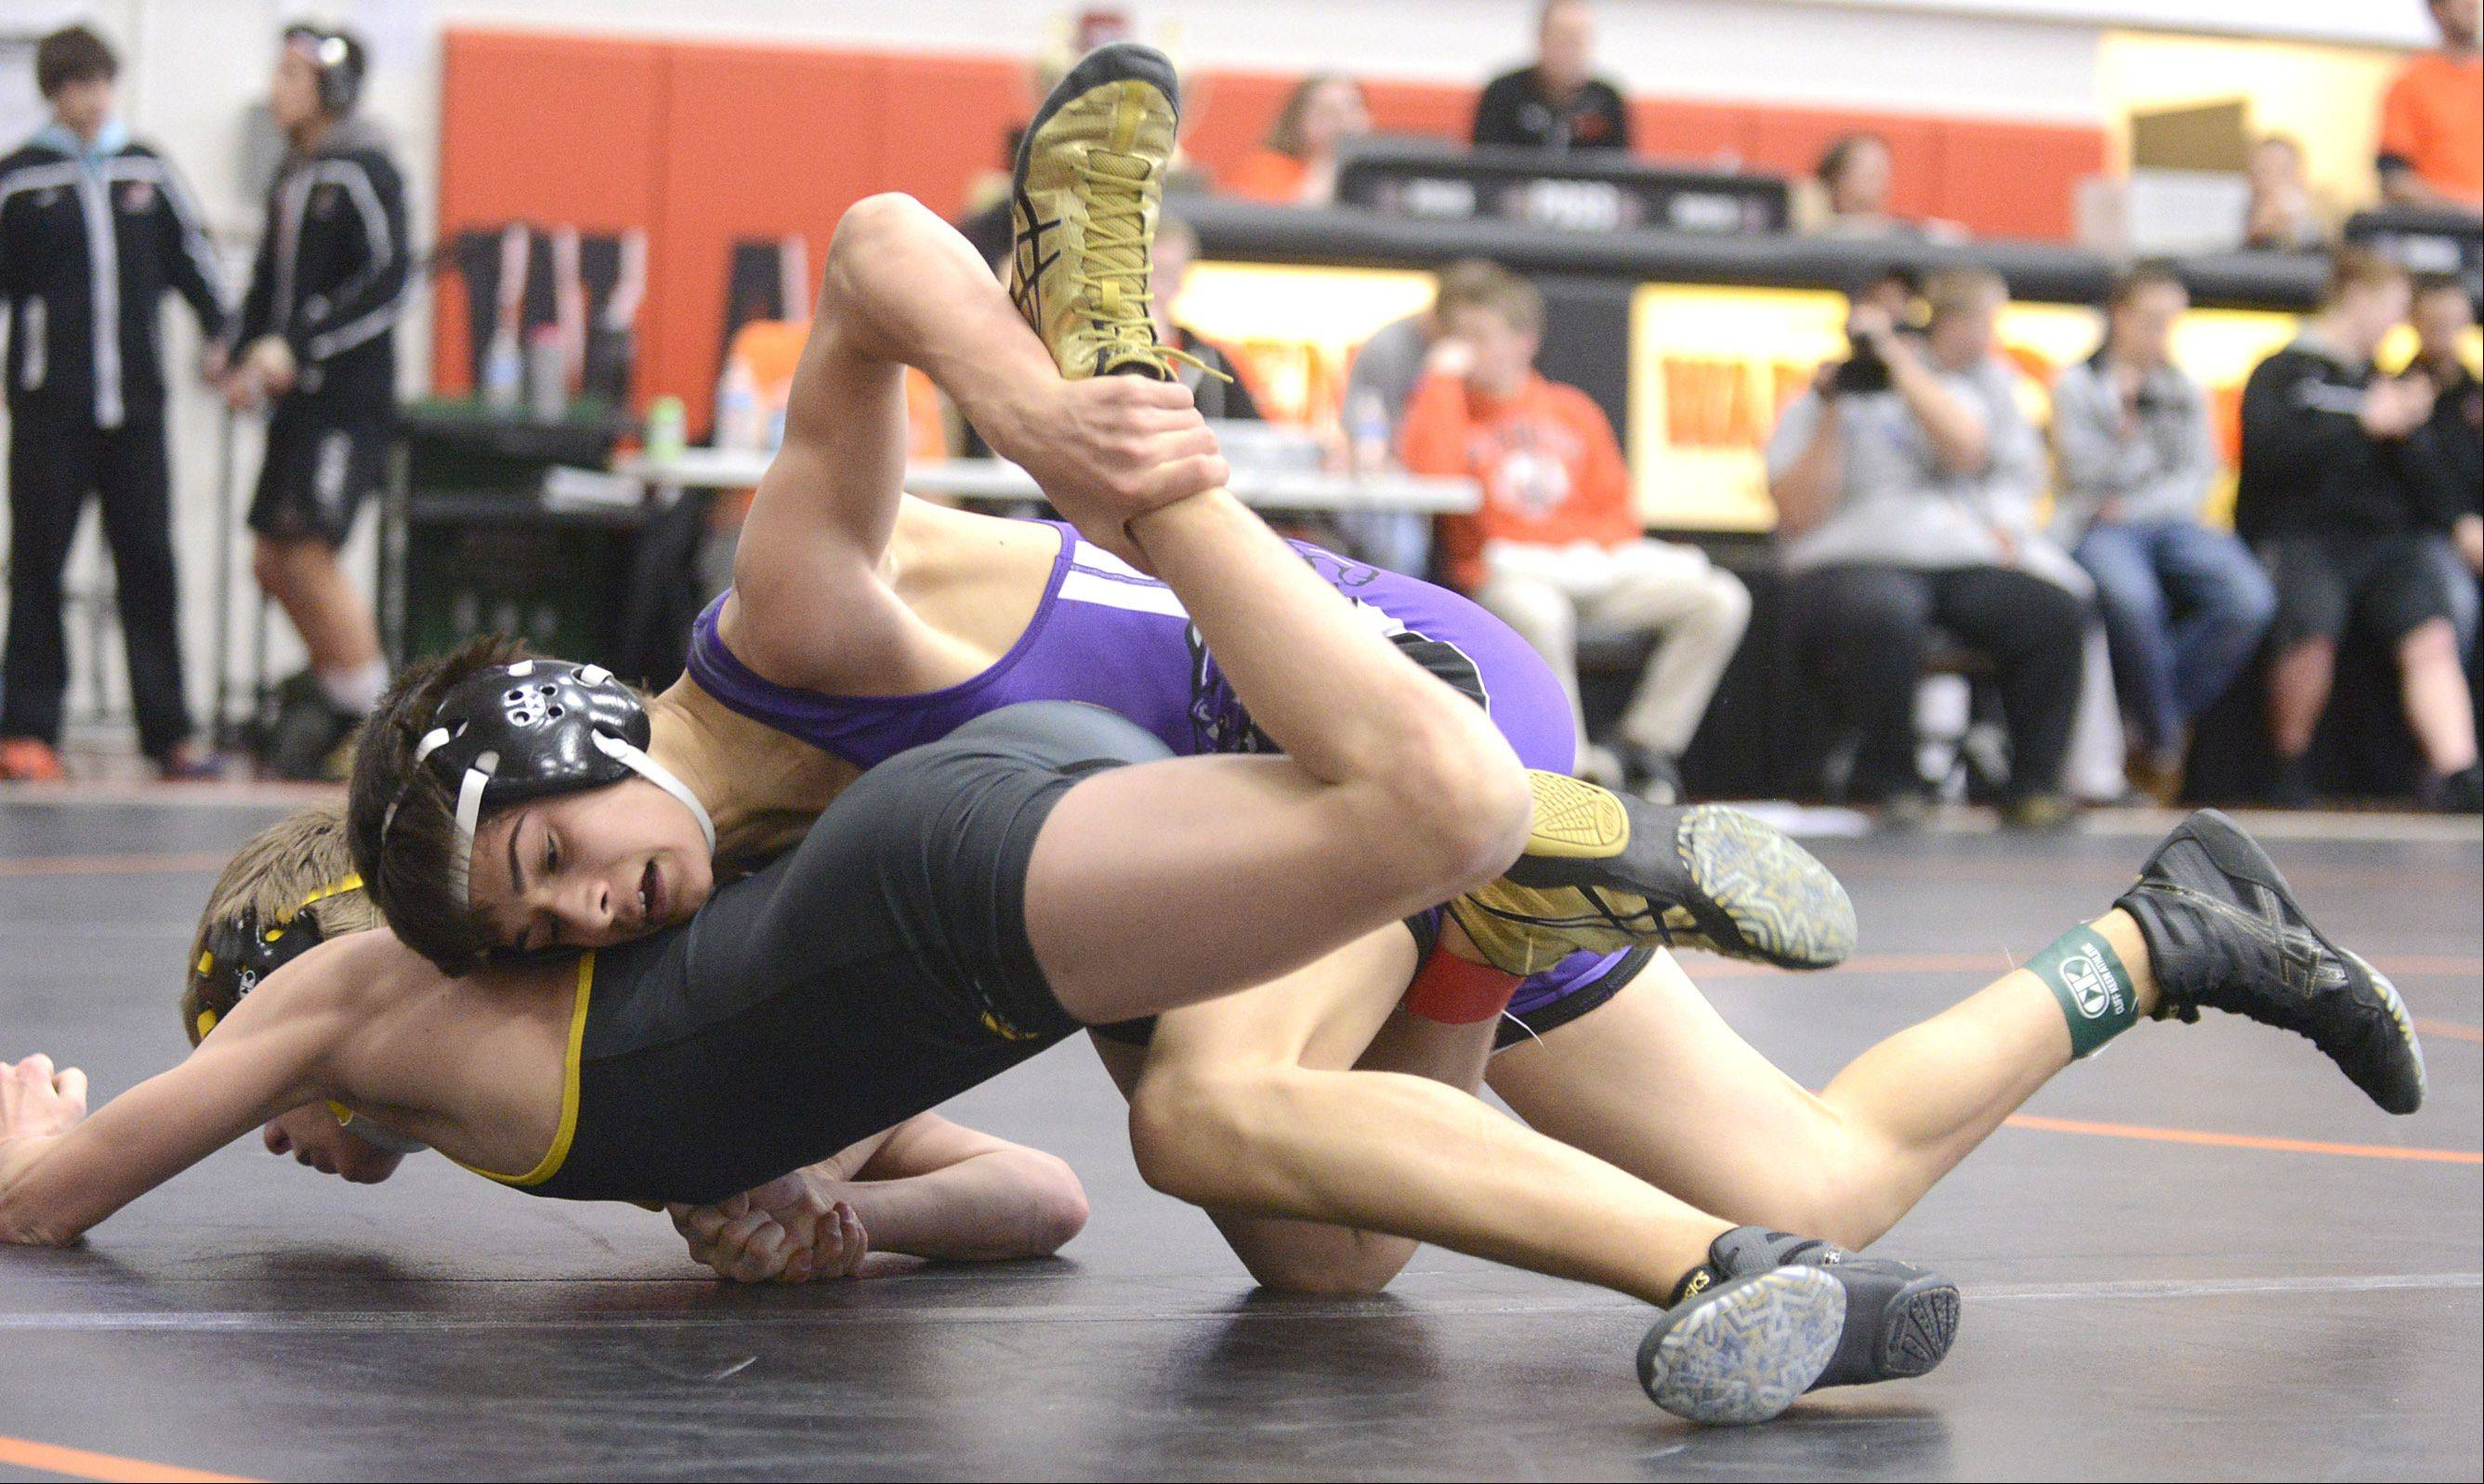 Hampshire's Kyle Szlenk takes the 106-pound match championship final over Jacobs' Beau Harrier at the Fox Valley Conference meet in McHenry on Saturday.